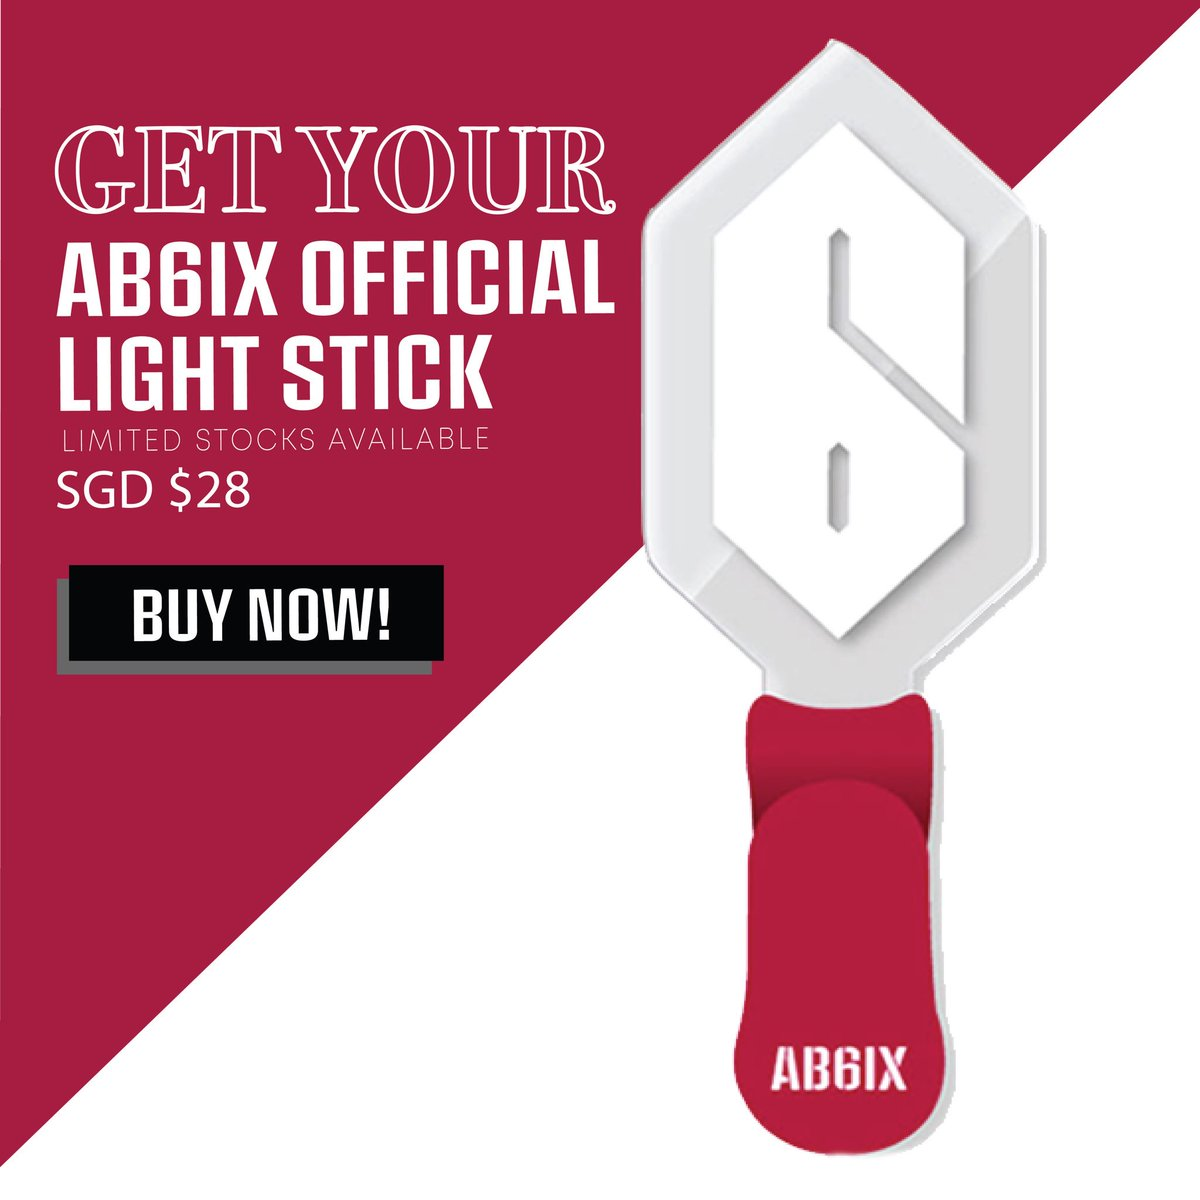 Get your #AB6IX Official Lightstick, and collect it directly at AB6IX 1st Fanmeeting [1ST ABNEW] in Singapore! Order here: bit.ly/AB6IXlightstick Less than 3 weeks till #AB6IXinSG! 😍 🎫: apactix.com/events/detail/…